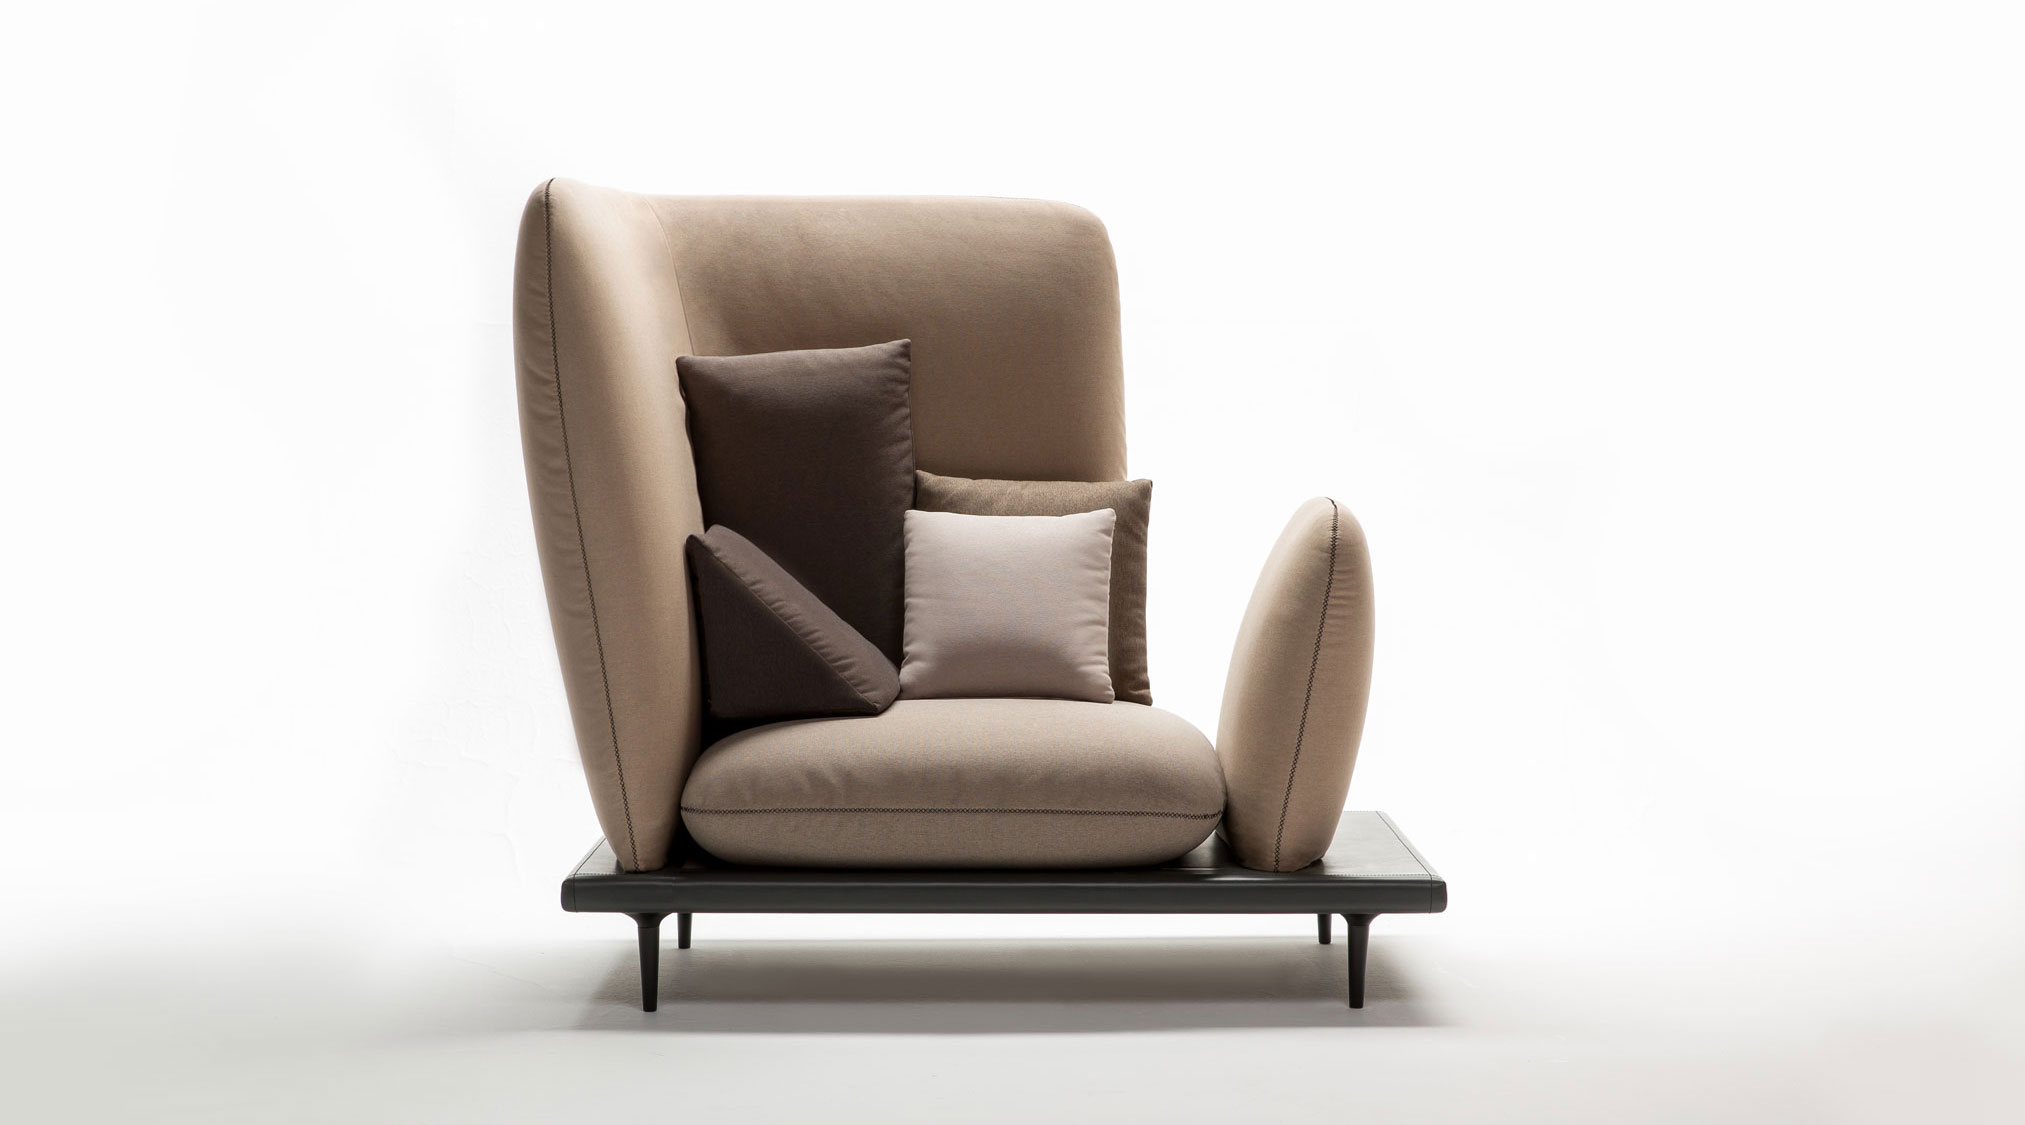 sofa4manhattan armchair